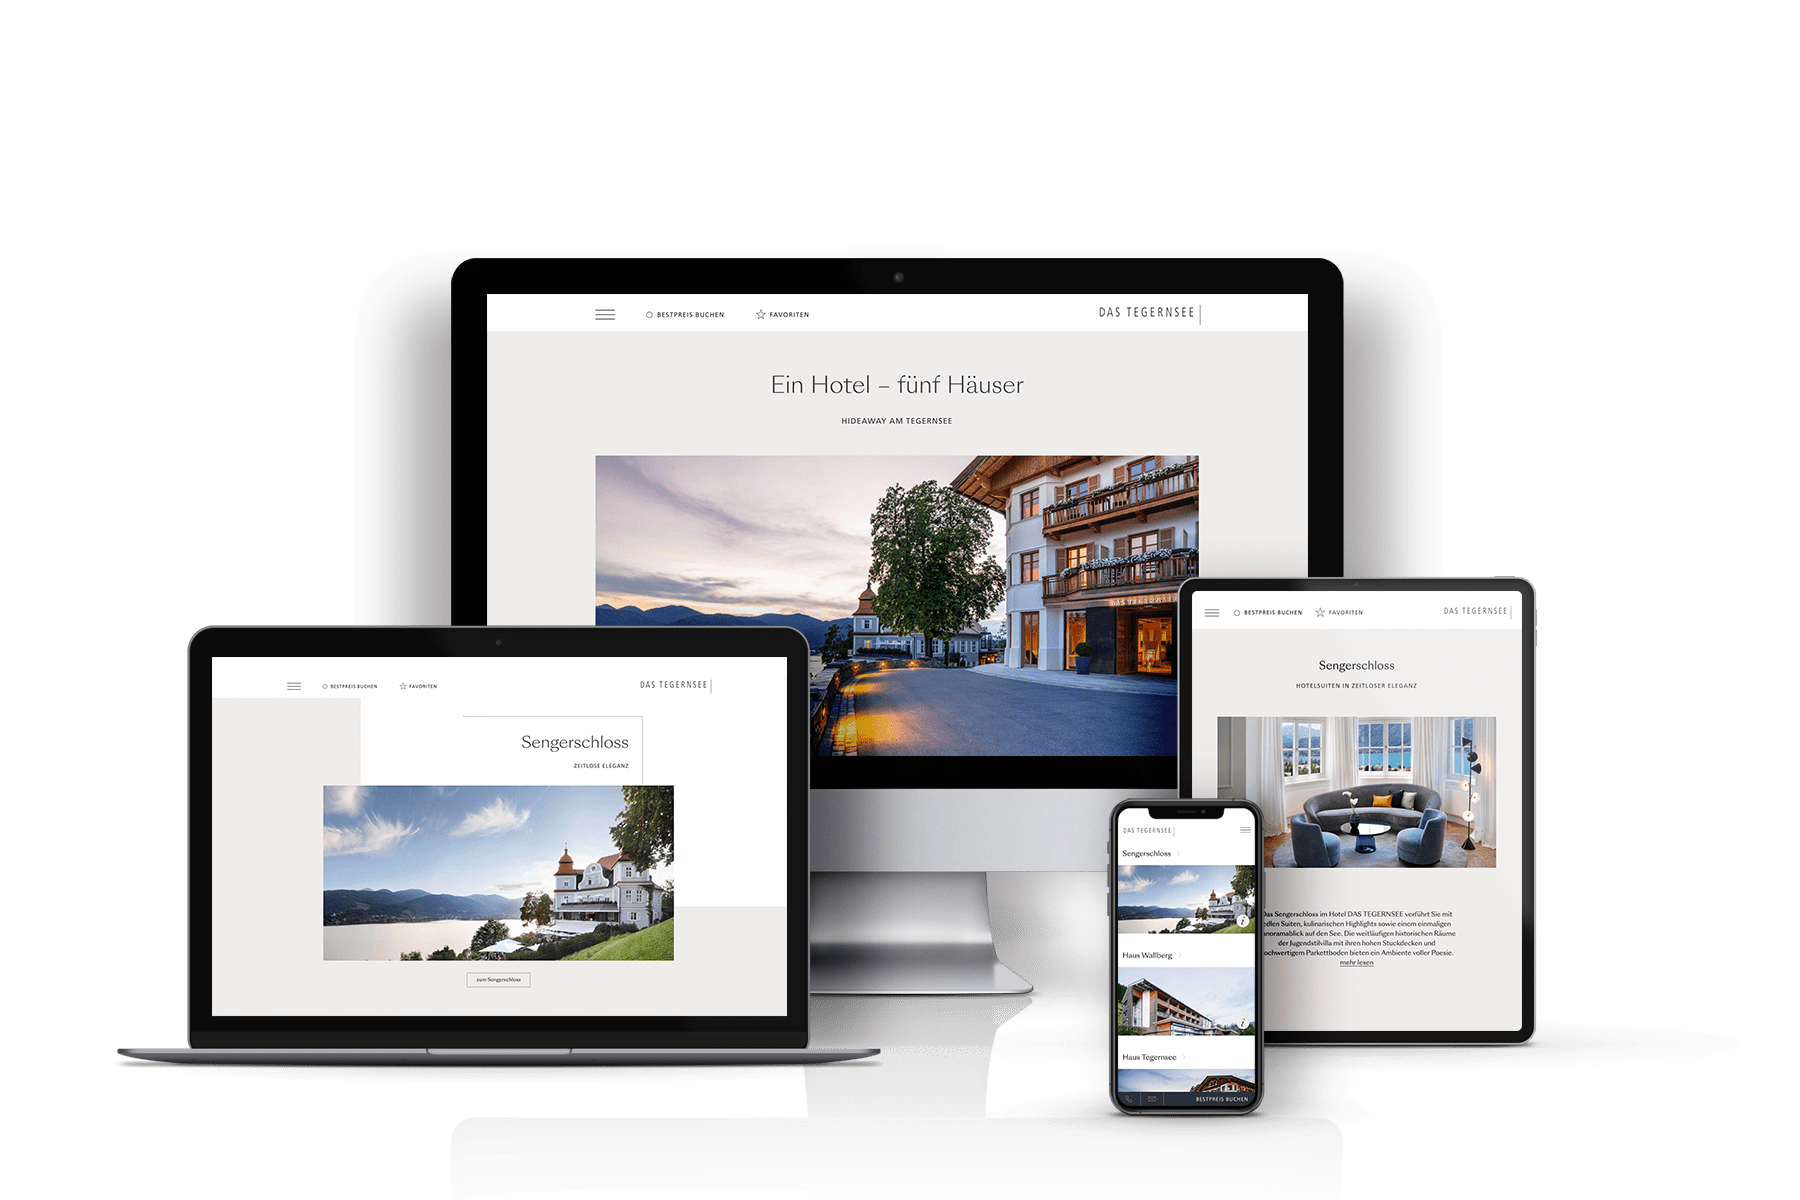 DAS TEGERNSEE - Website on all devices